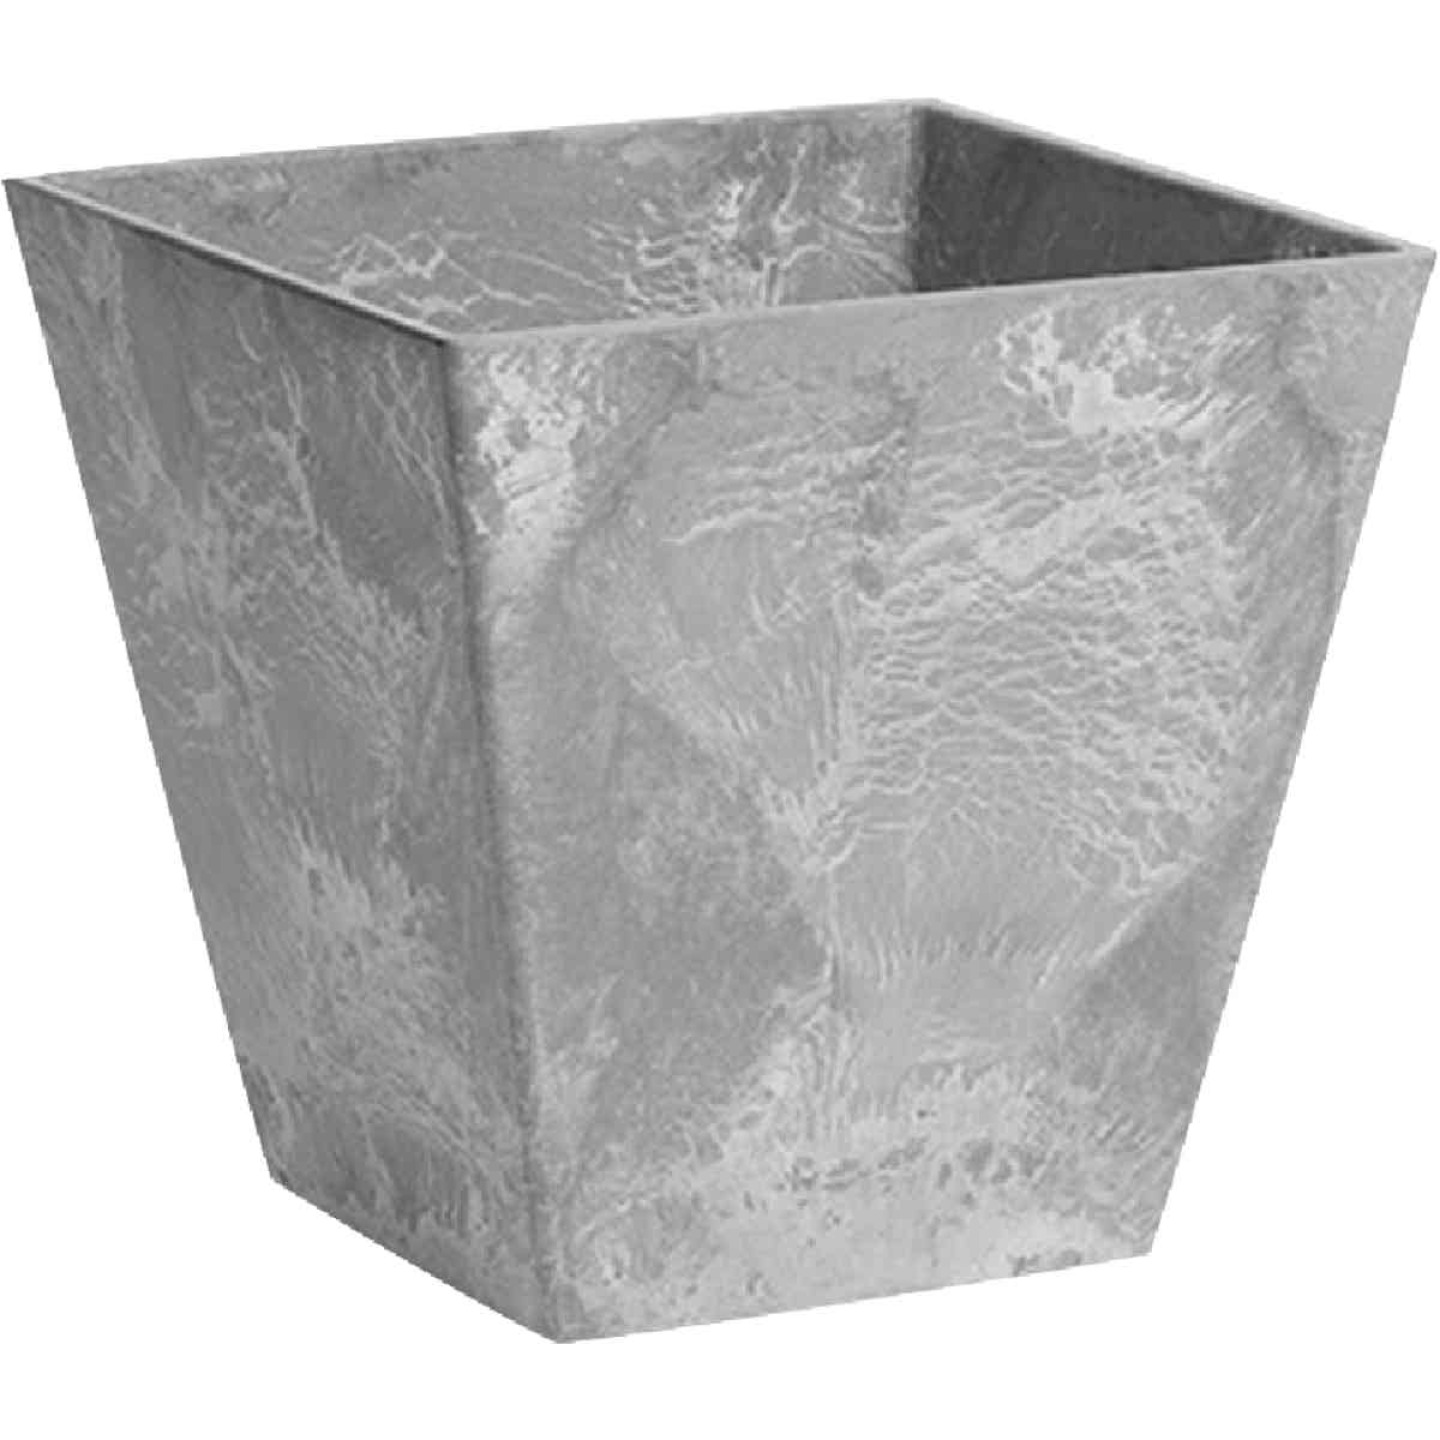 Novelty ArtStone Ella 8 In. W. x 8 In. H. x 8 In. L. Gray Resin Planter Image 1